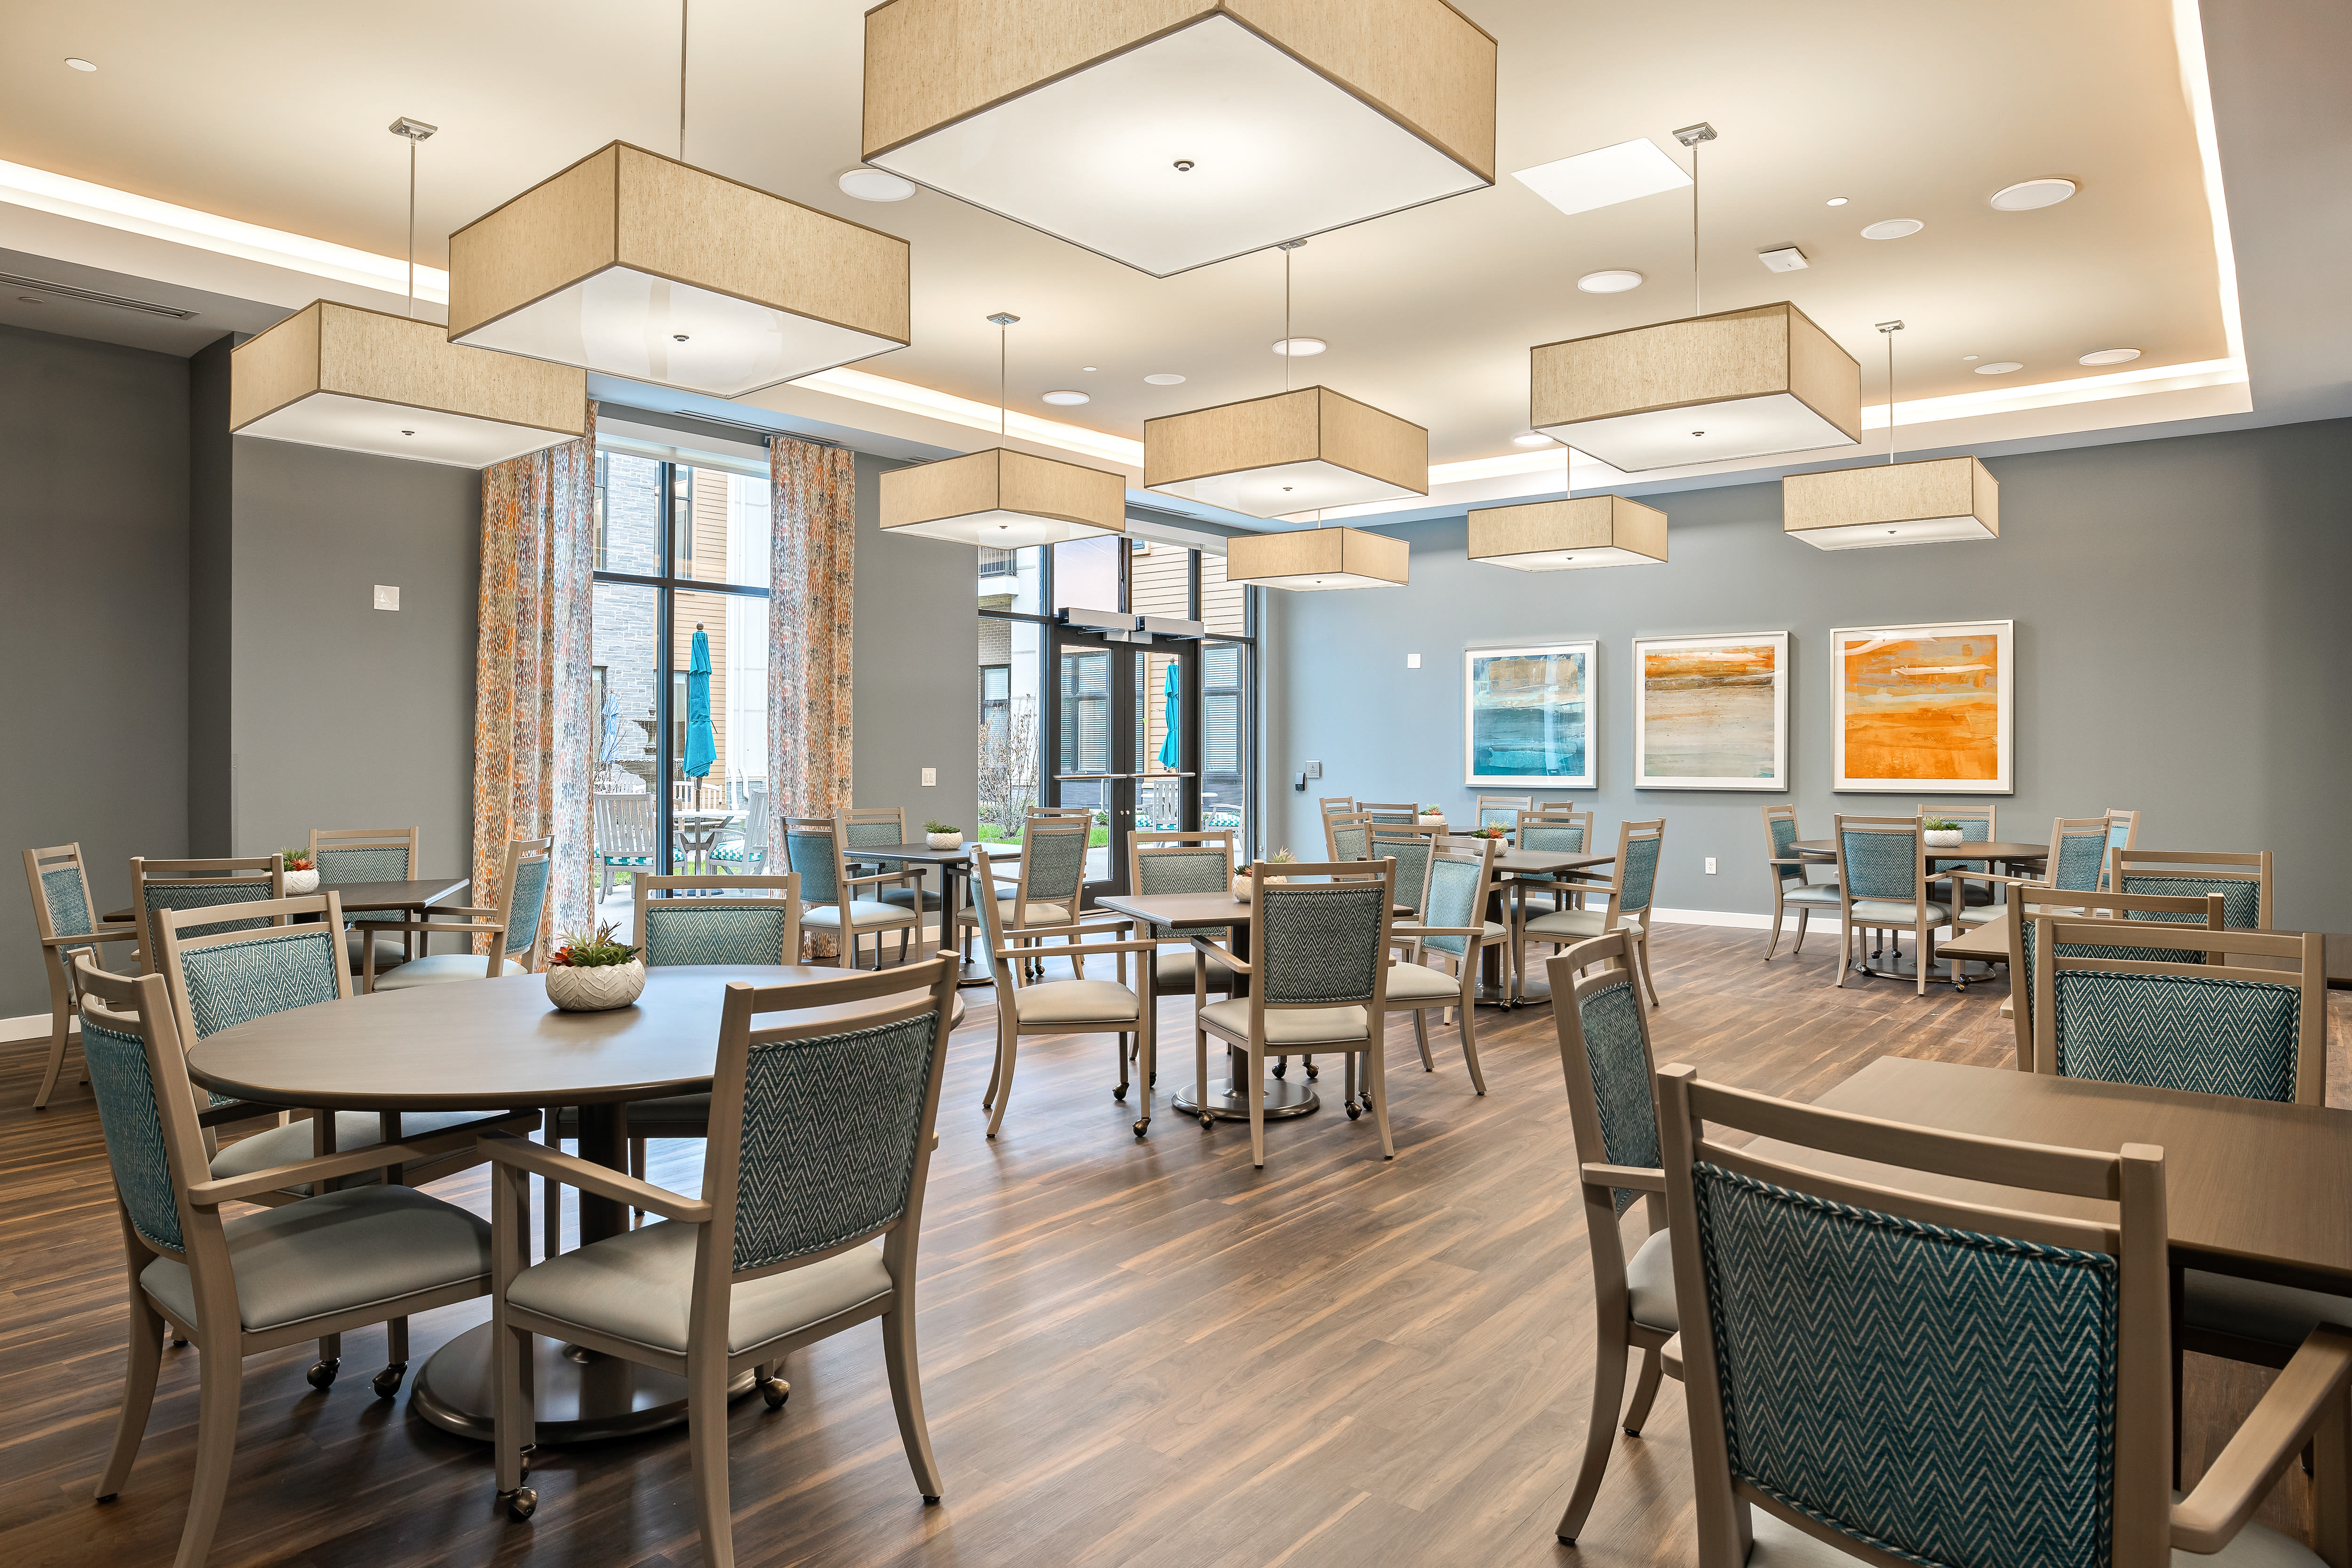 Casual dining room at Anthology of Mayfield Heights - NOW OPEN! in Mayfield Heights, Ohio